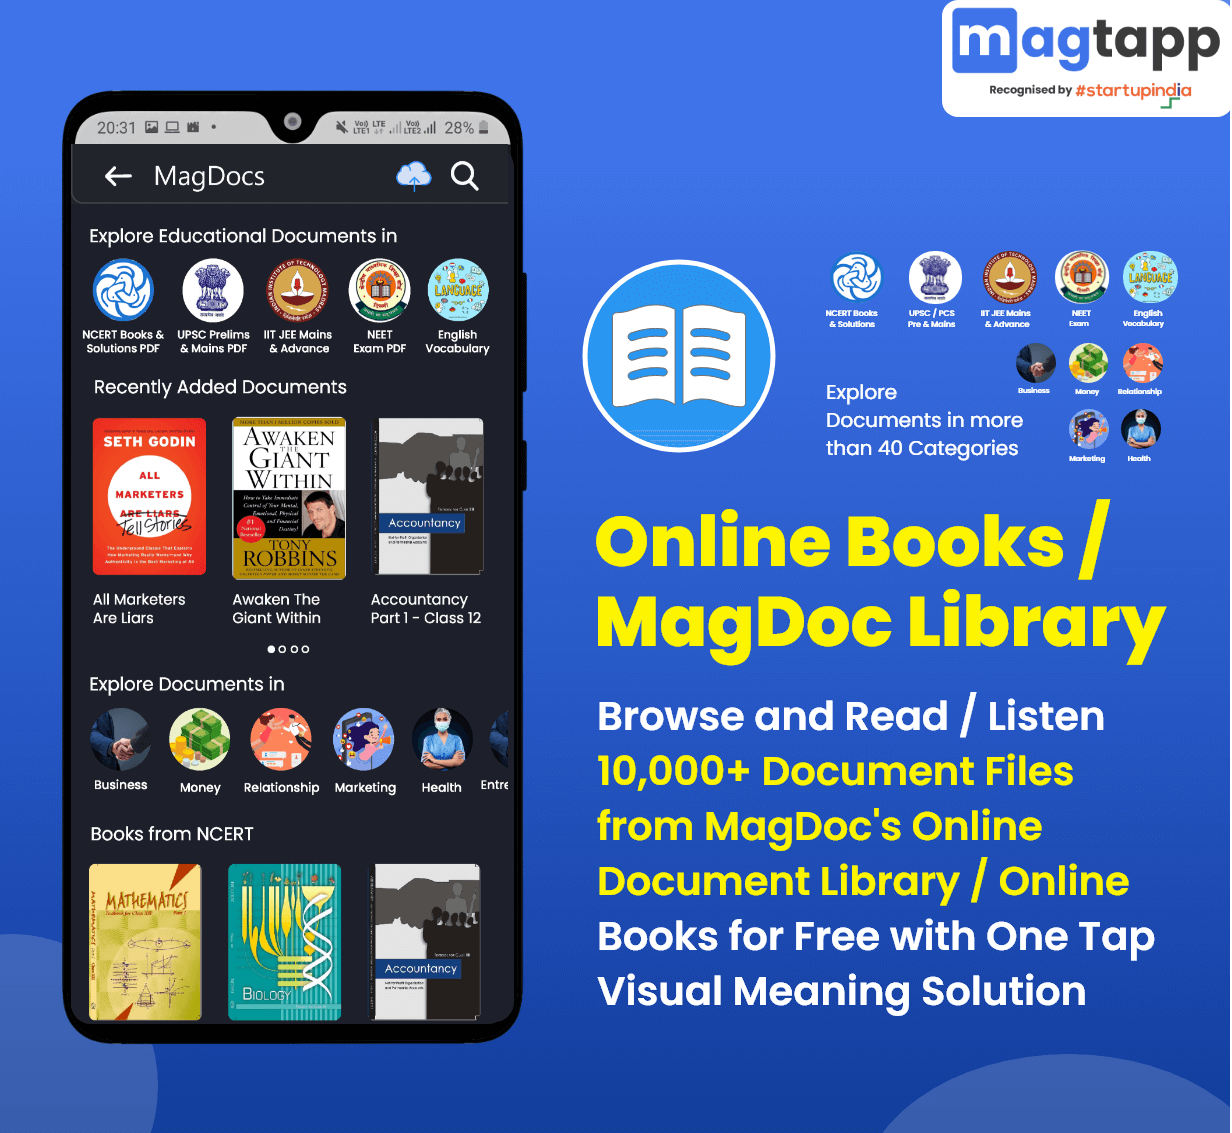 Online Books or MagDoc Library